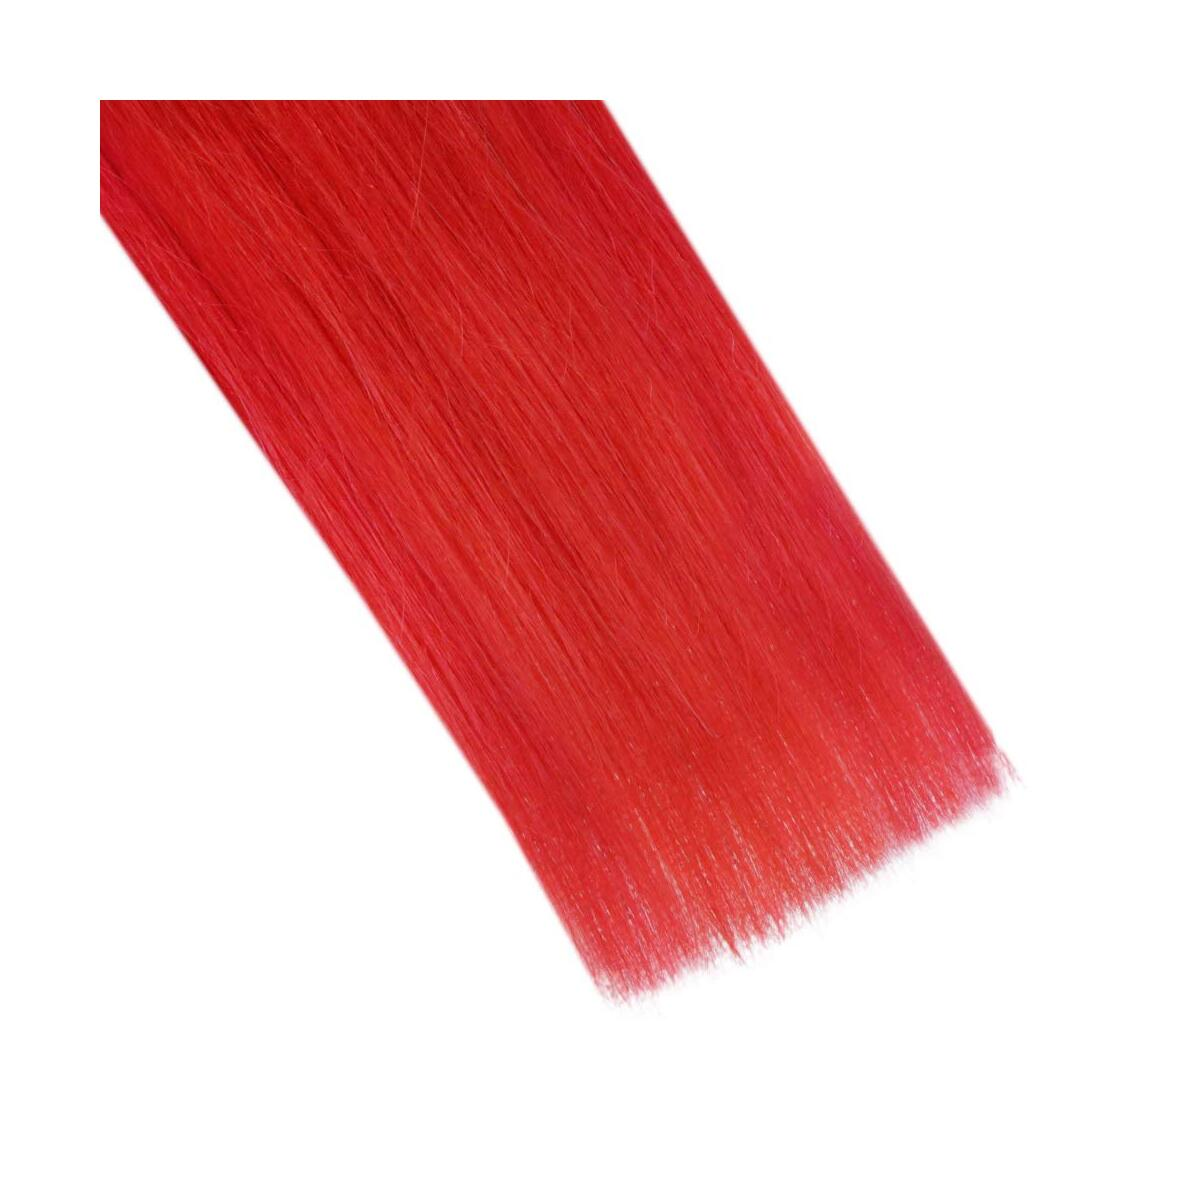 Single Sided Tape Hair Extensions Red Hair Extensions 22inch 25g Per Pack Invisible Hair Extensions Real Human Hair